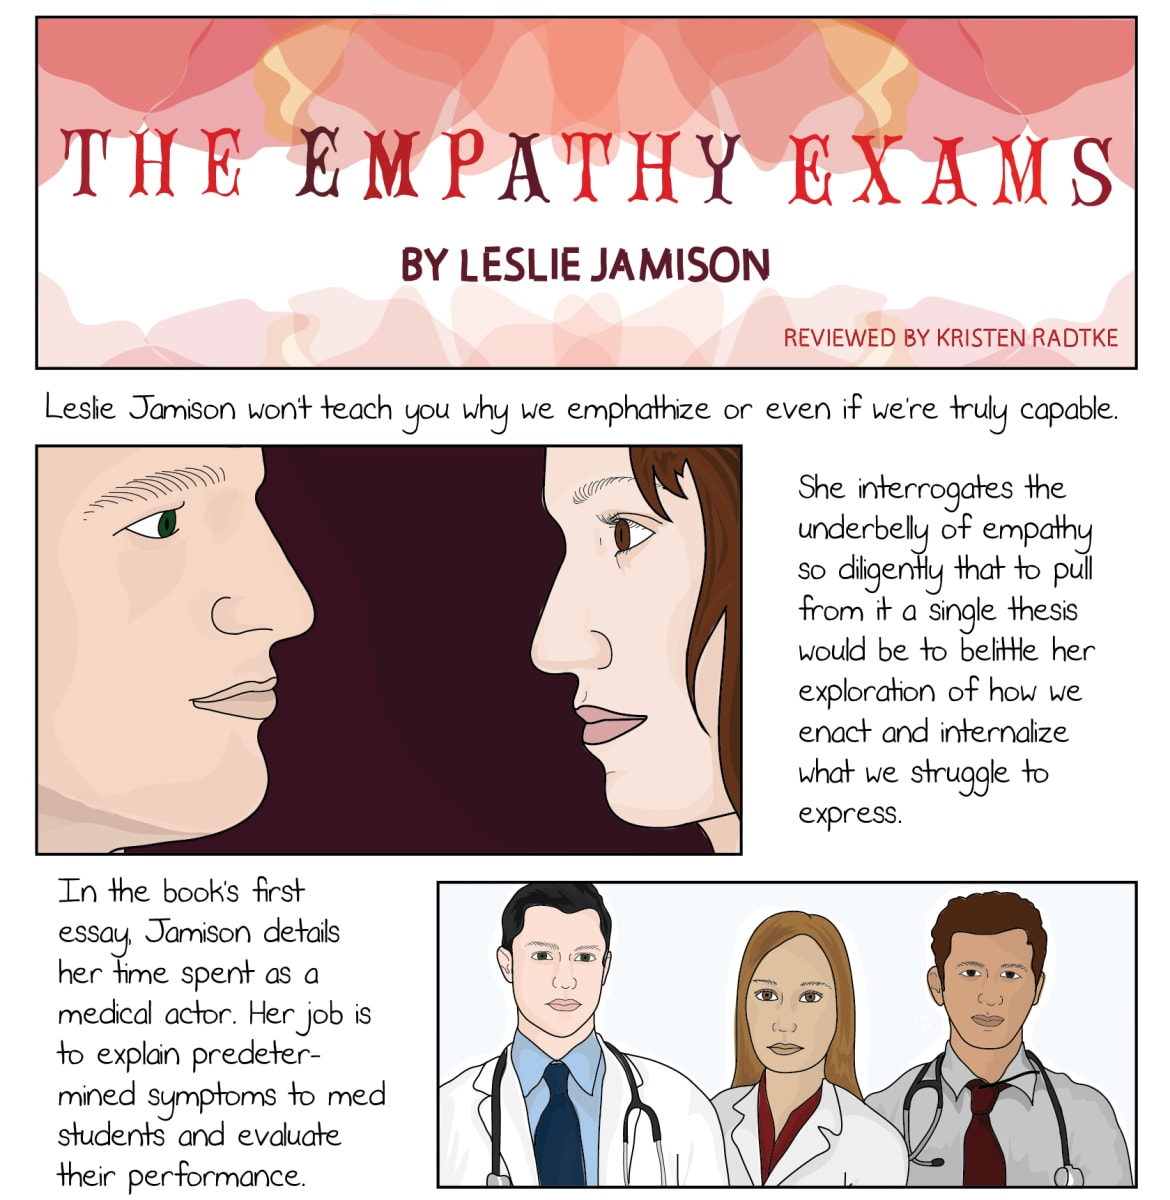 empathetic writing essays The way empathy is portrayed in this movie is by flashbacks, love and romance, death situations, and age woodward, also known as woody, is the main character of this film throughout the text, the producers use film techniques to draw empathy from the audience towards the character.